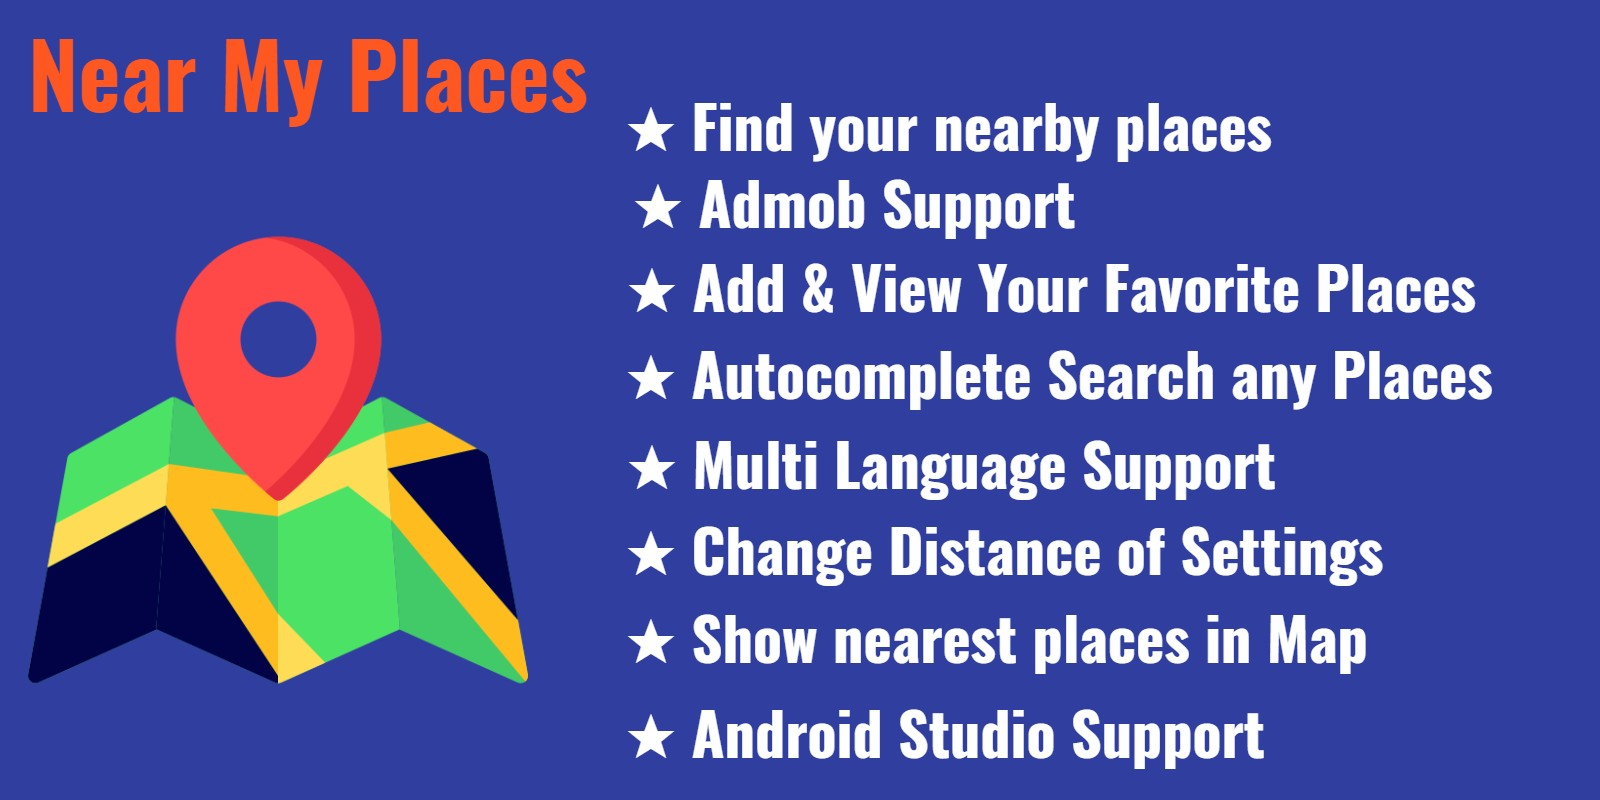 Near My Places - Android App with Admob